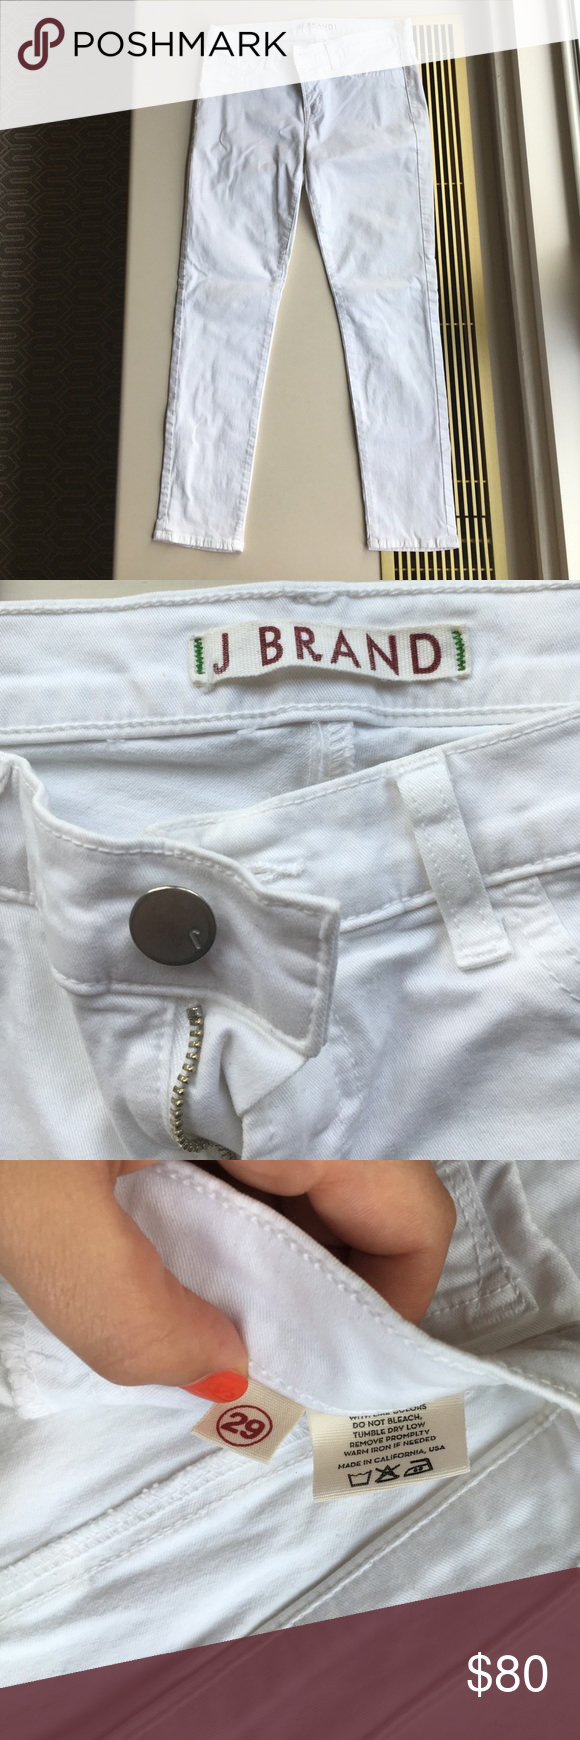 Like new J. Brand white skinny jeans Really gorgeous, like new, J.Brand white skinny jeans. Dry cleaned and ready for new home. One tiny spot of discoloration (see last photo) underneath back pocket that is very unnoticeable (reflected in price). Price flexible make me an offer 🔥 J Brand Pants Skinny